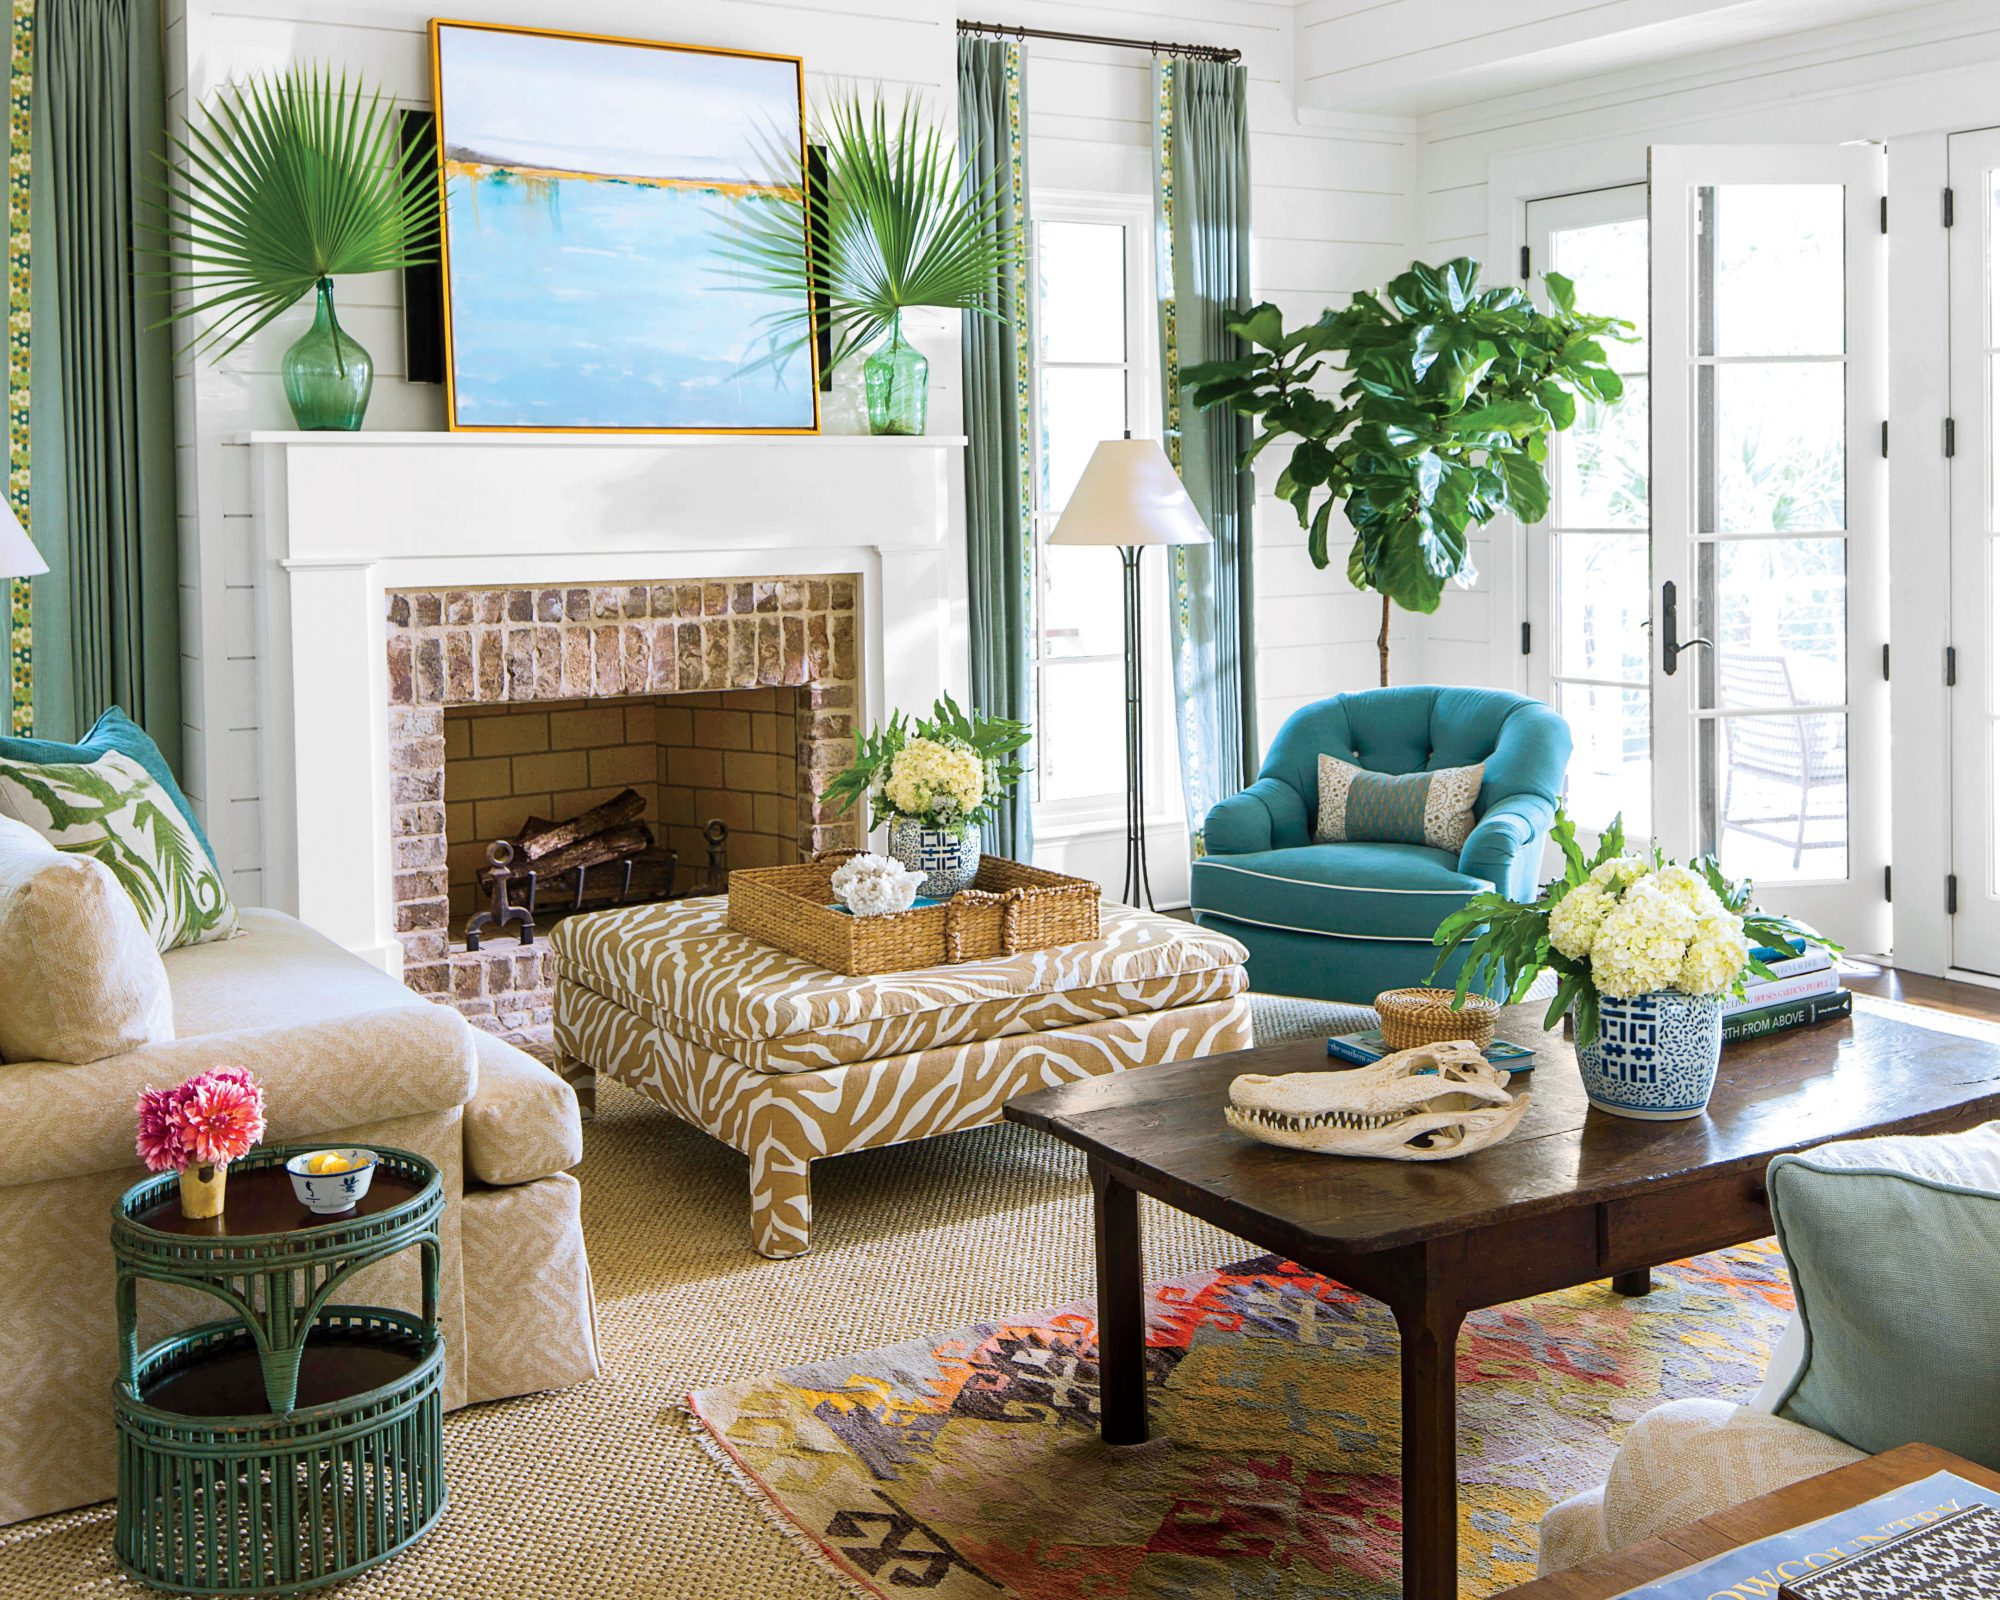 Living Room Decorating Ideas Awesome 106 Living Room Decorating Ideas  Southern Living Review